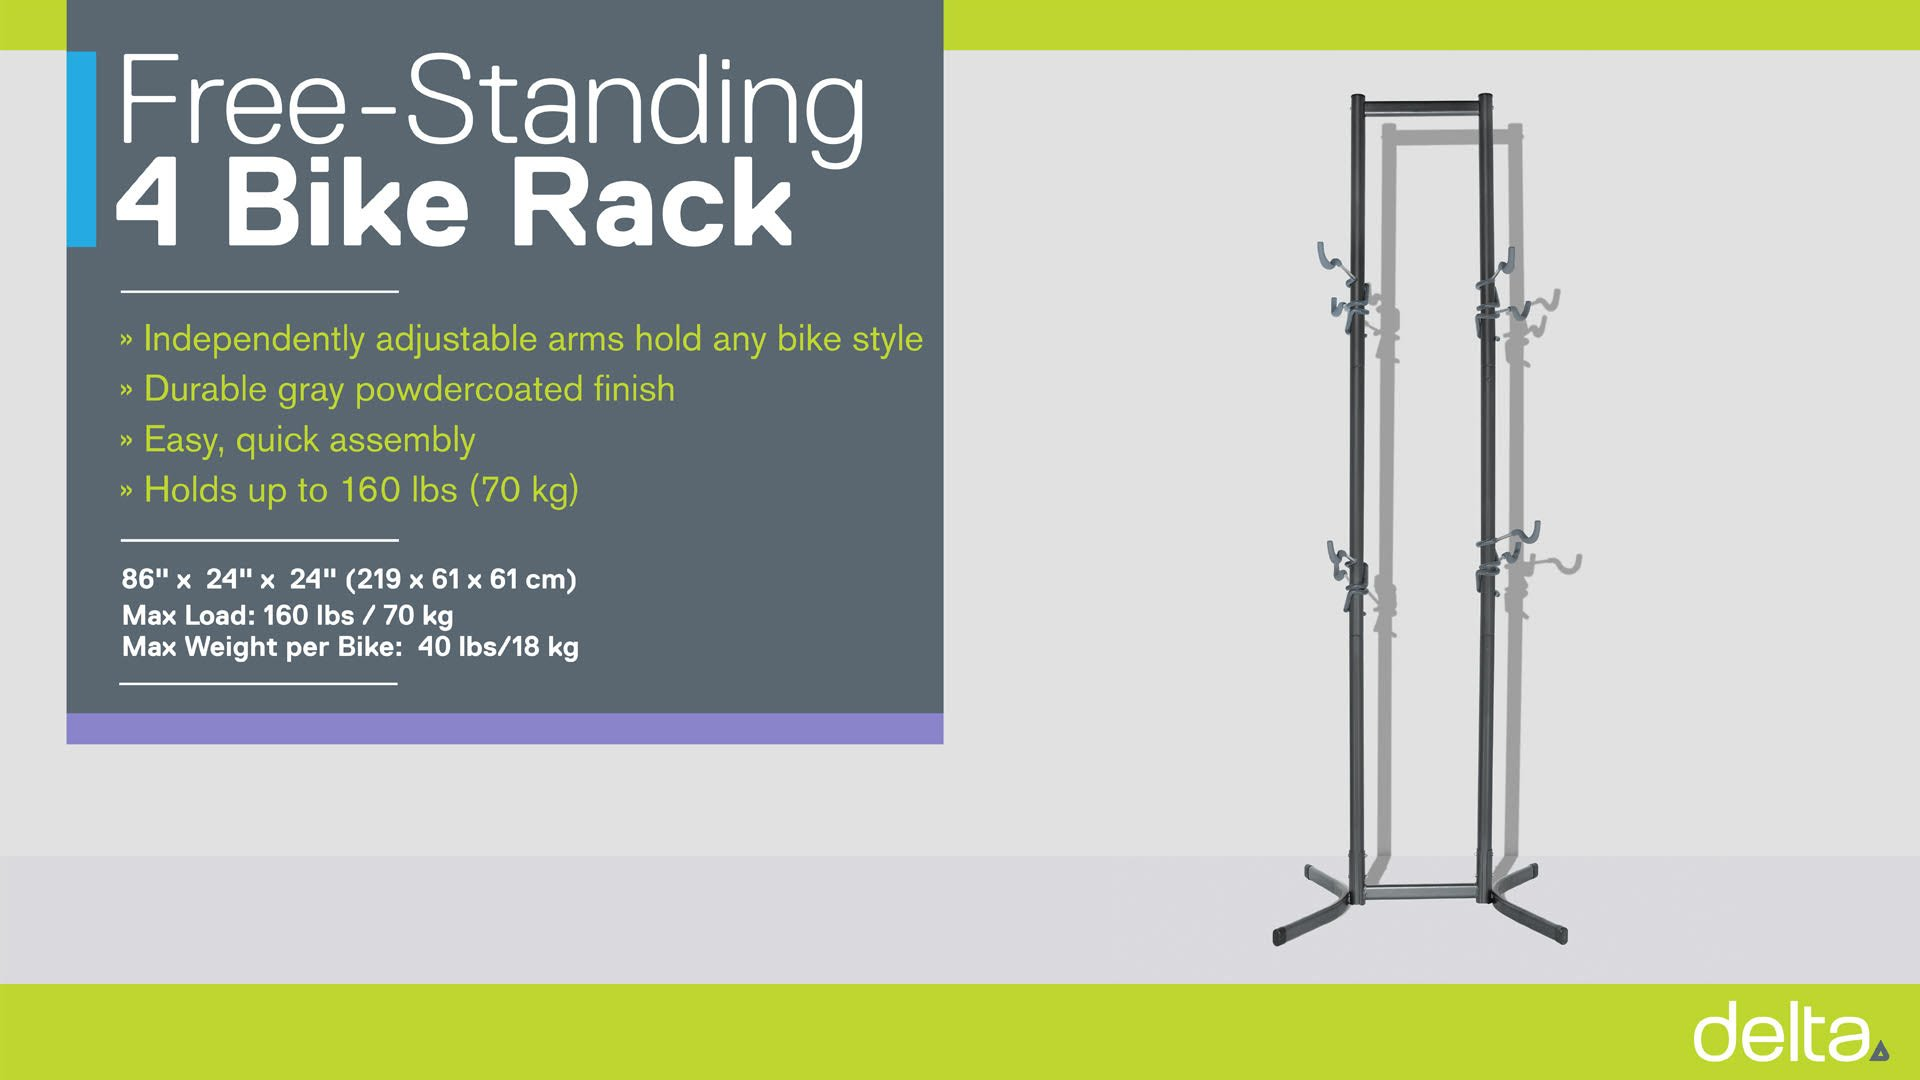 Four Bike Free-Standing Rack instructions